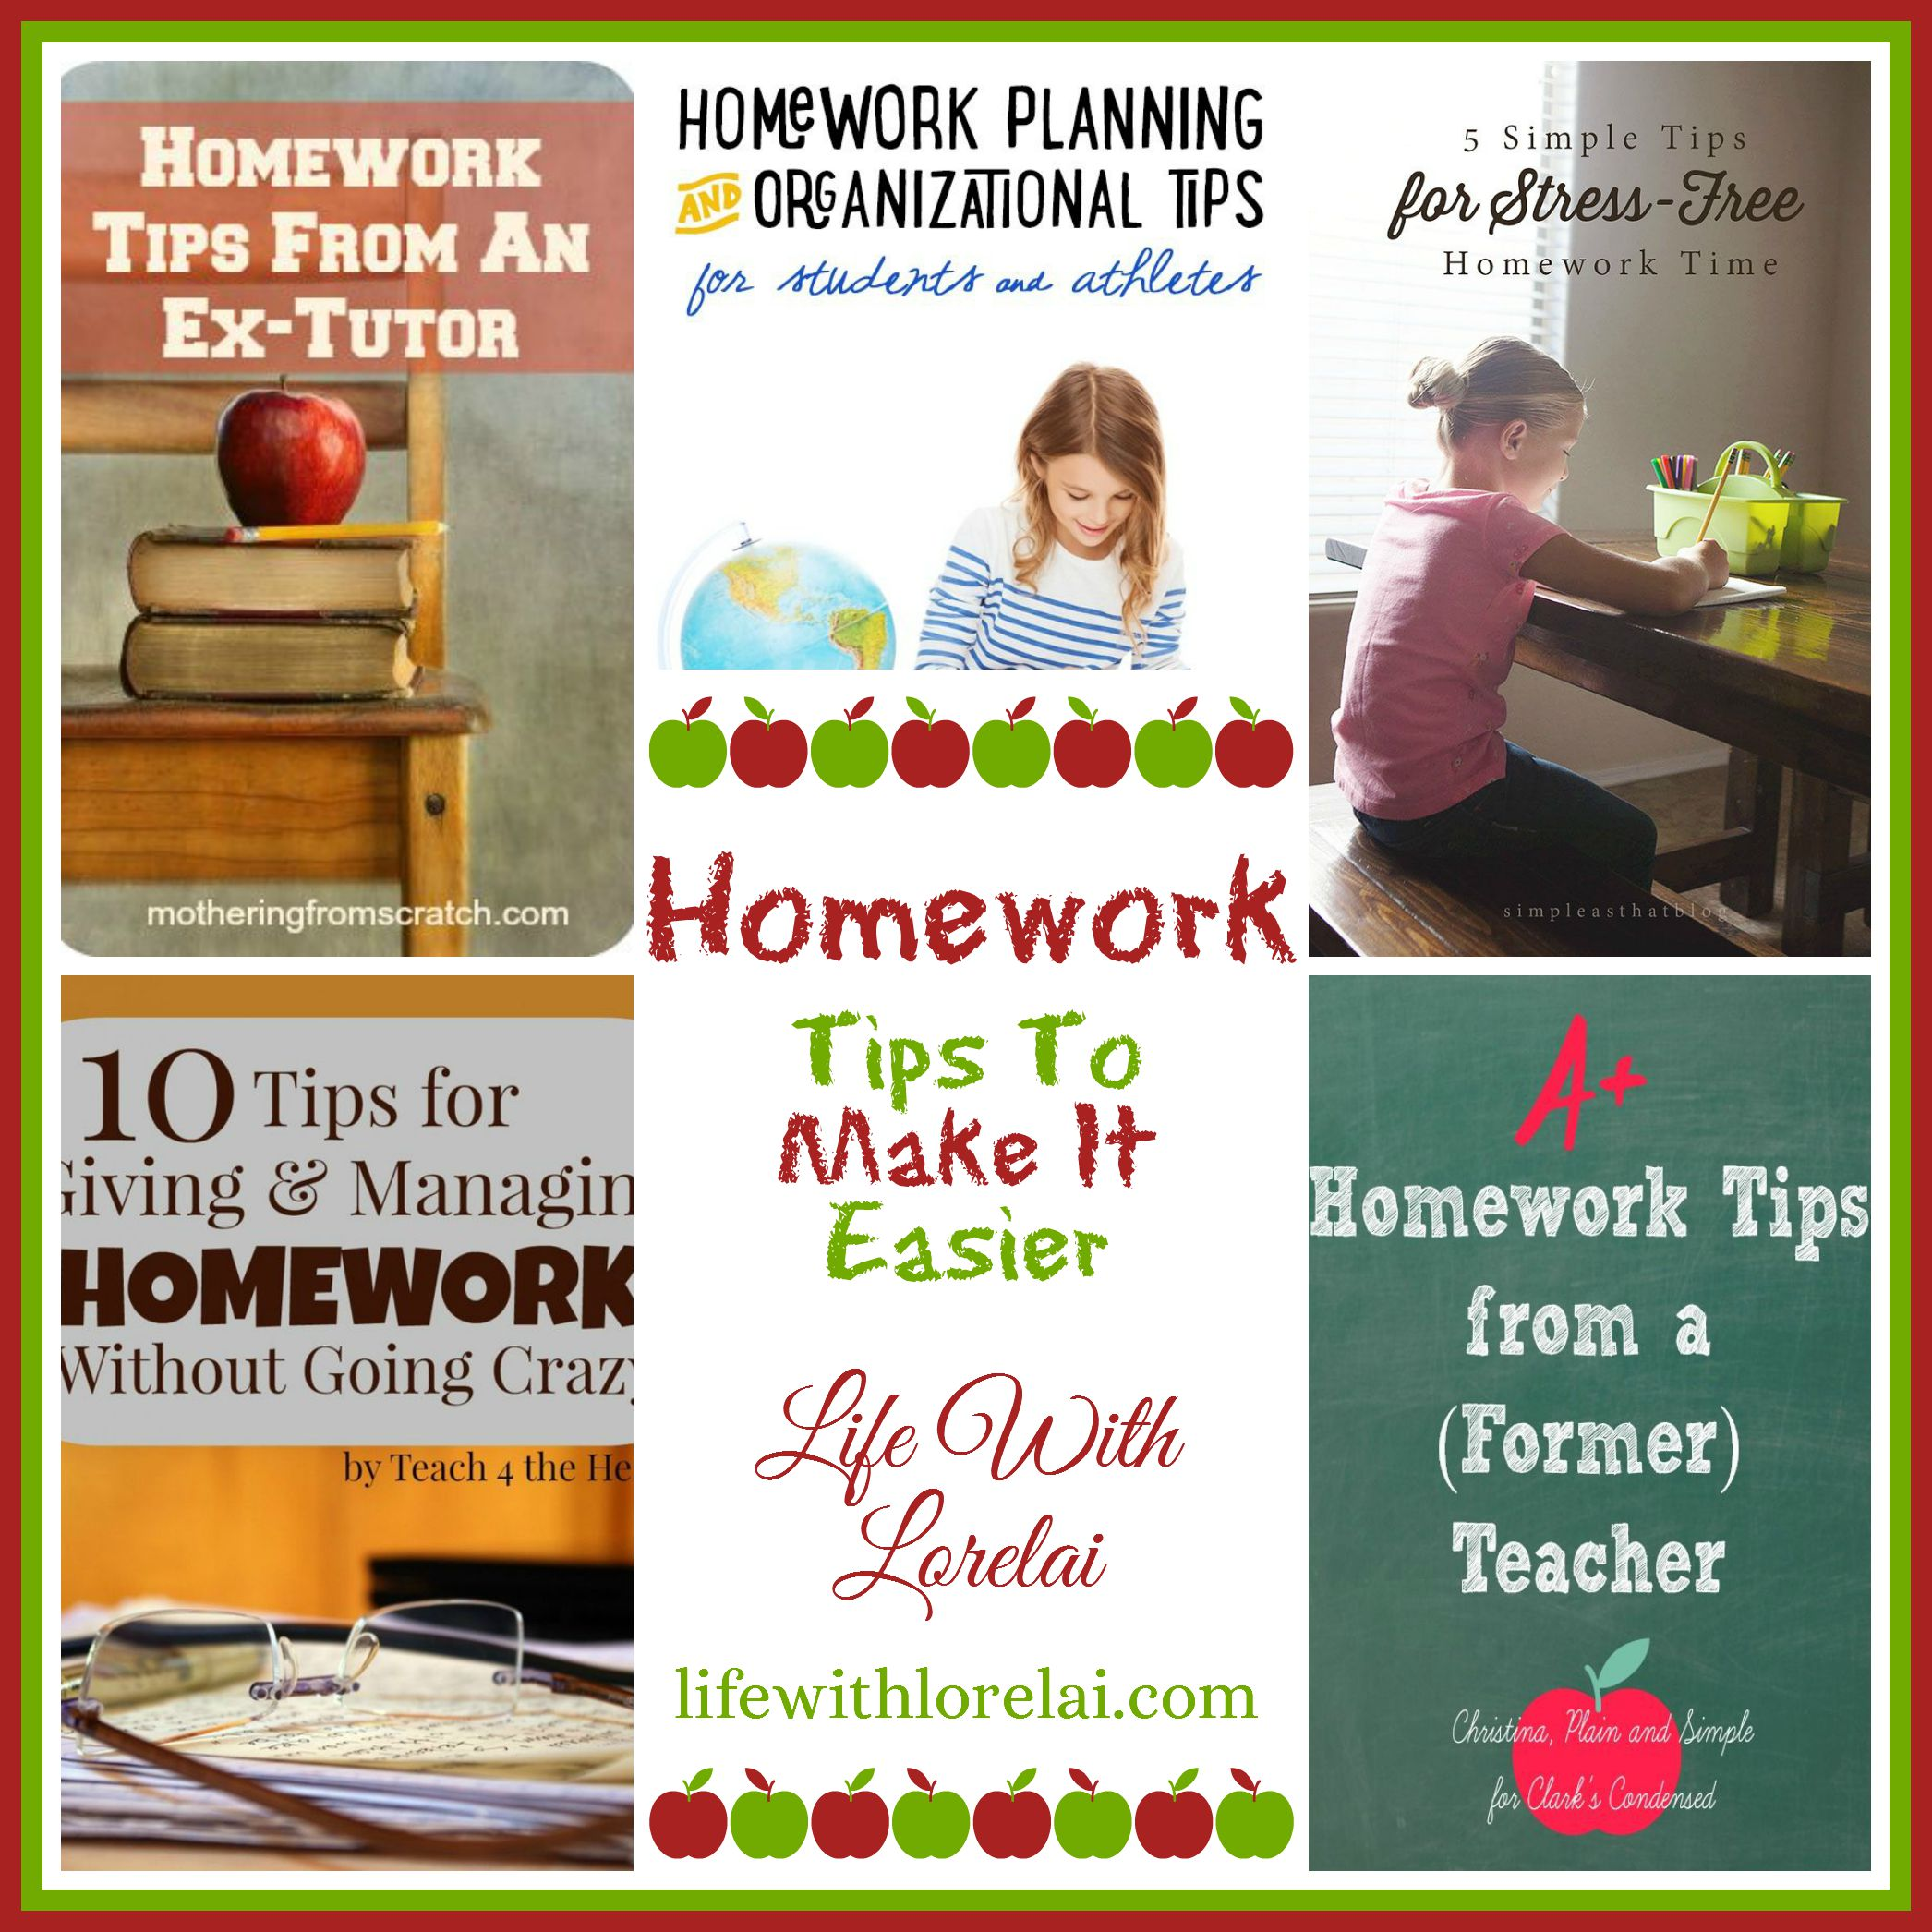 Homework - Tips To Make It Easier - Life With Lorelai